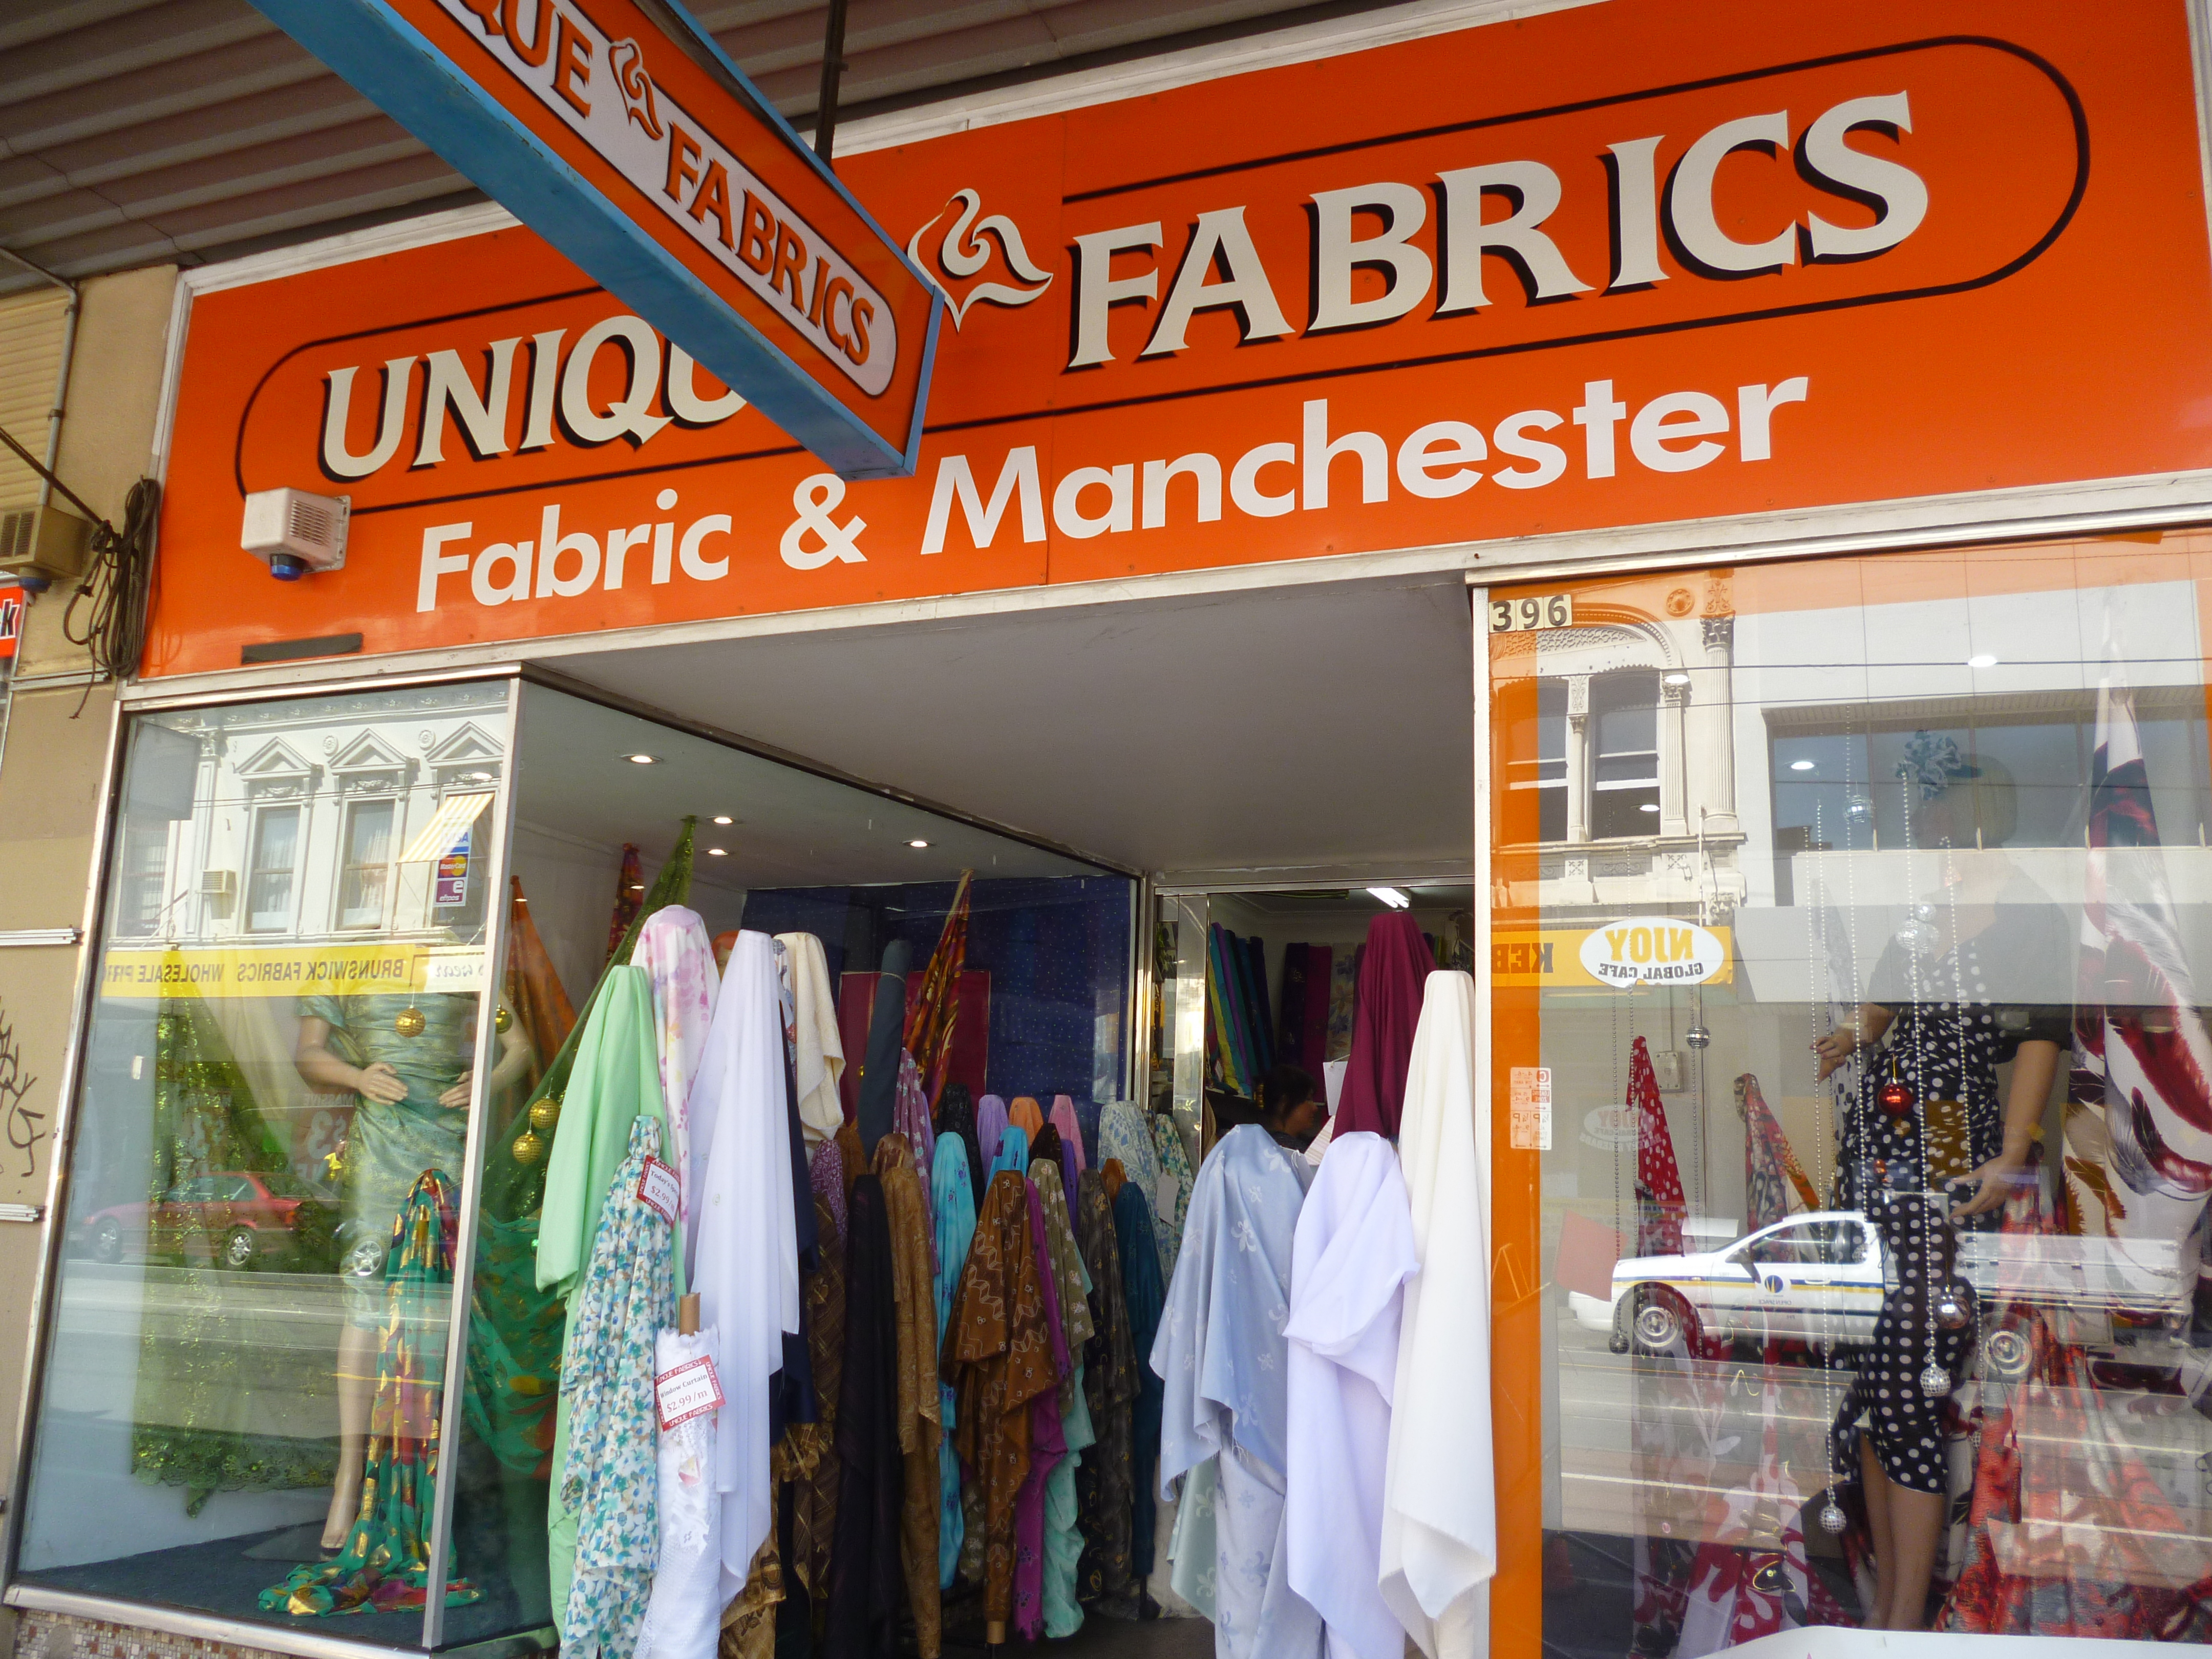 Cheap fabric stores on sydney road brunswick melbourne for Fabric retailers